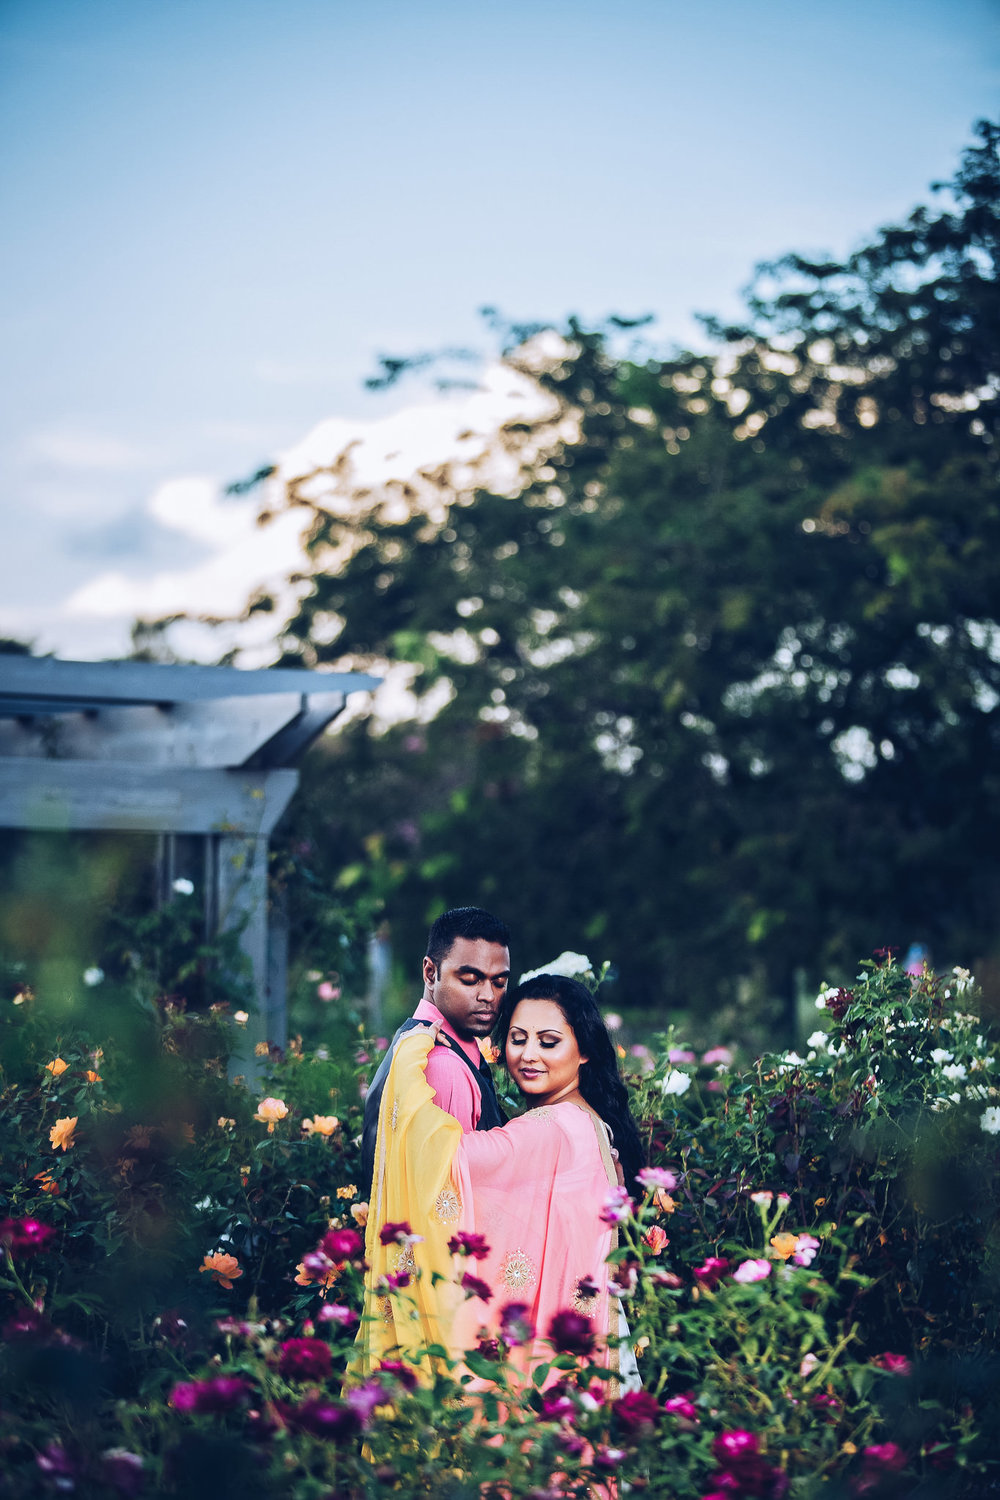 norfolk-botanical-garden-engagement-portrait-photograph-sharon-merwyn.jpg